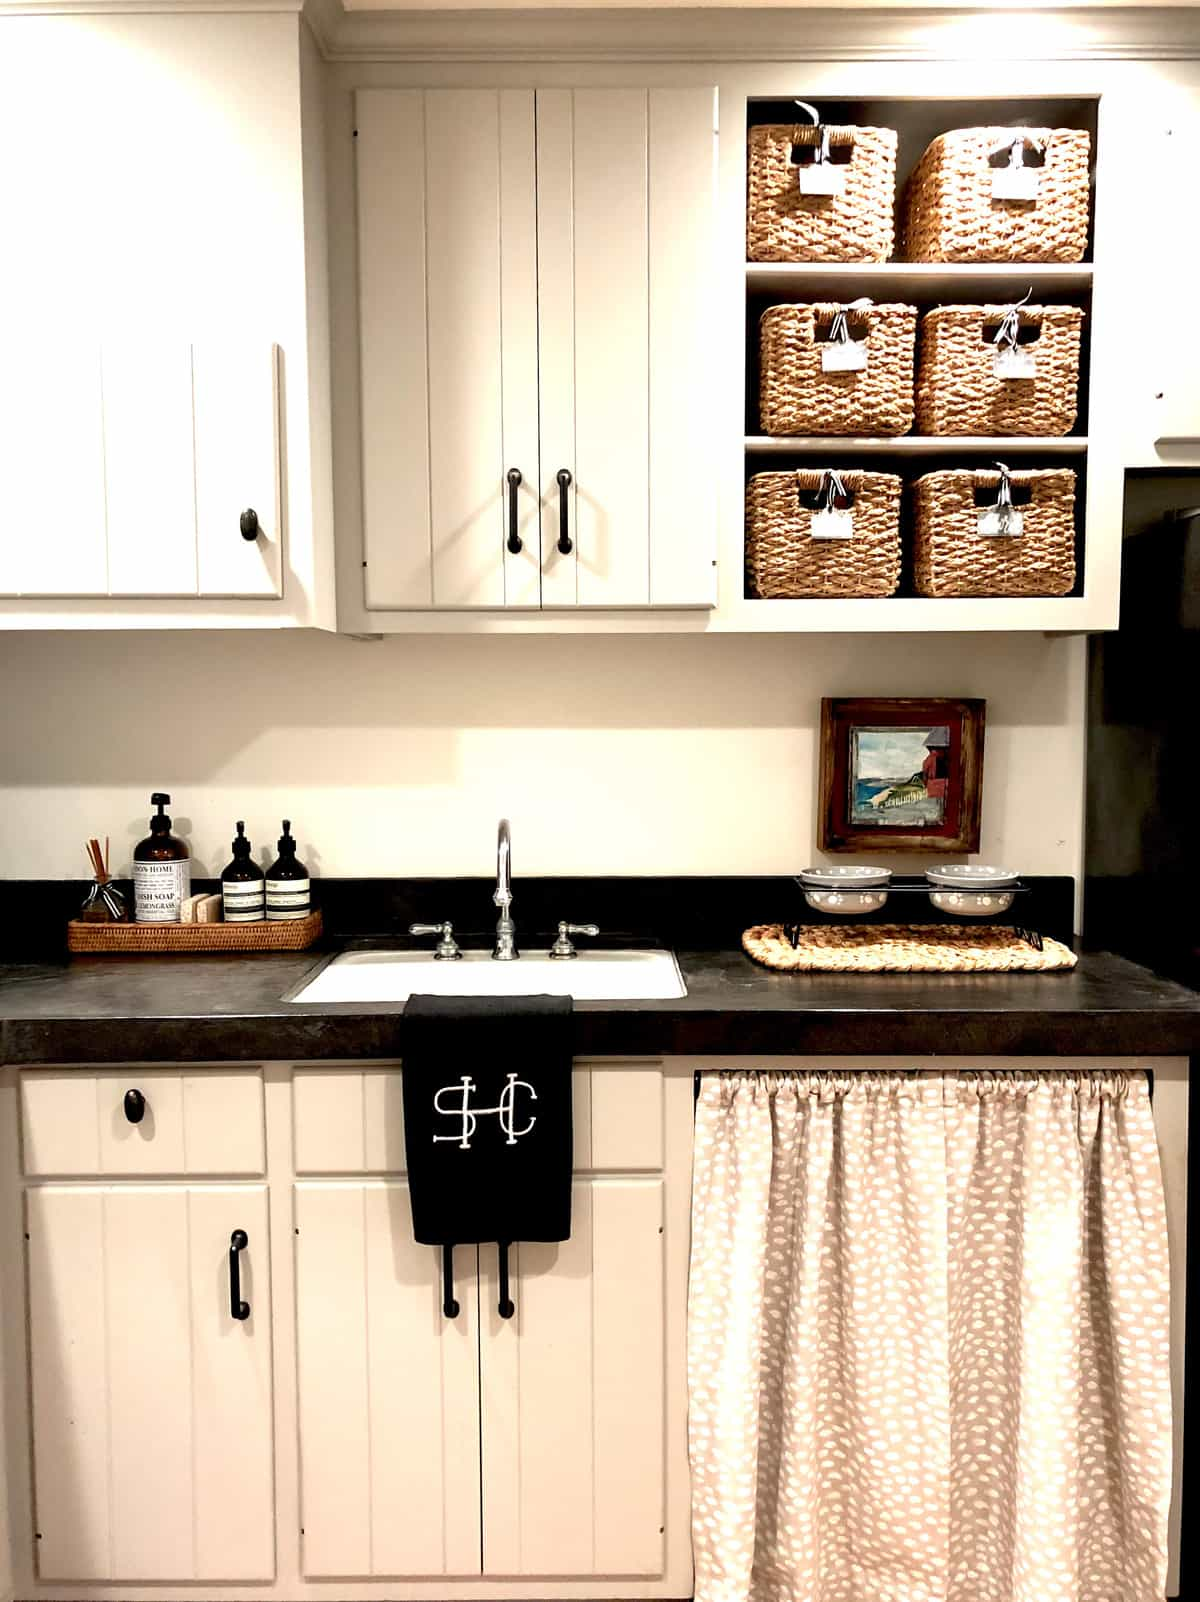 laundry room with skirt